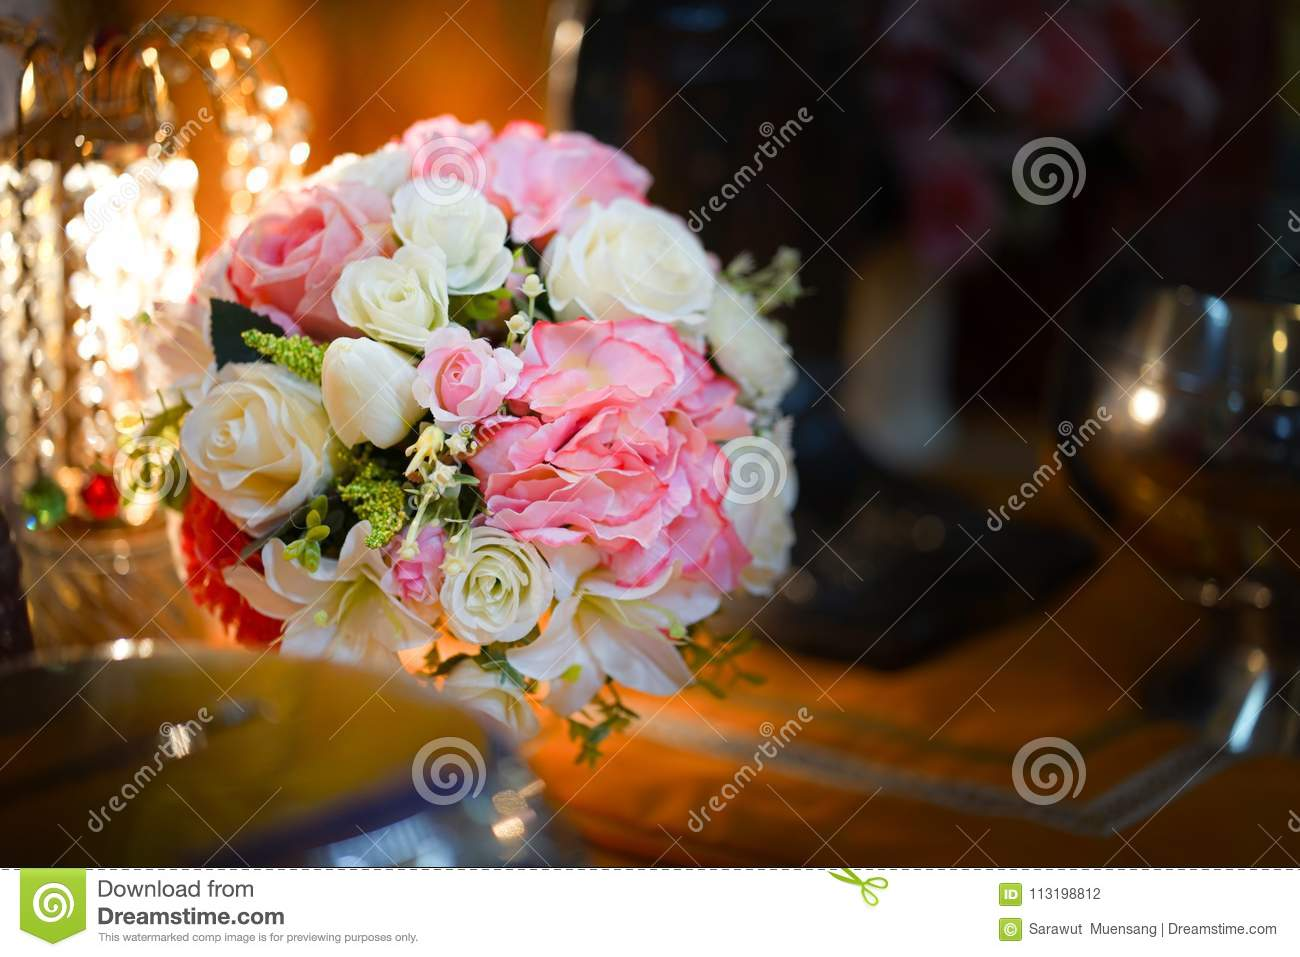 Fake flower and floral background rose flowers made of fabric the fake flower and floral background rose flowers made of fabric the fabric flowers bouquet fighting green izmirmasajfo